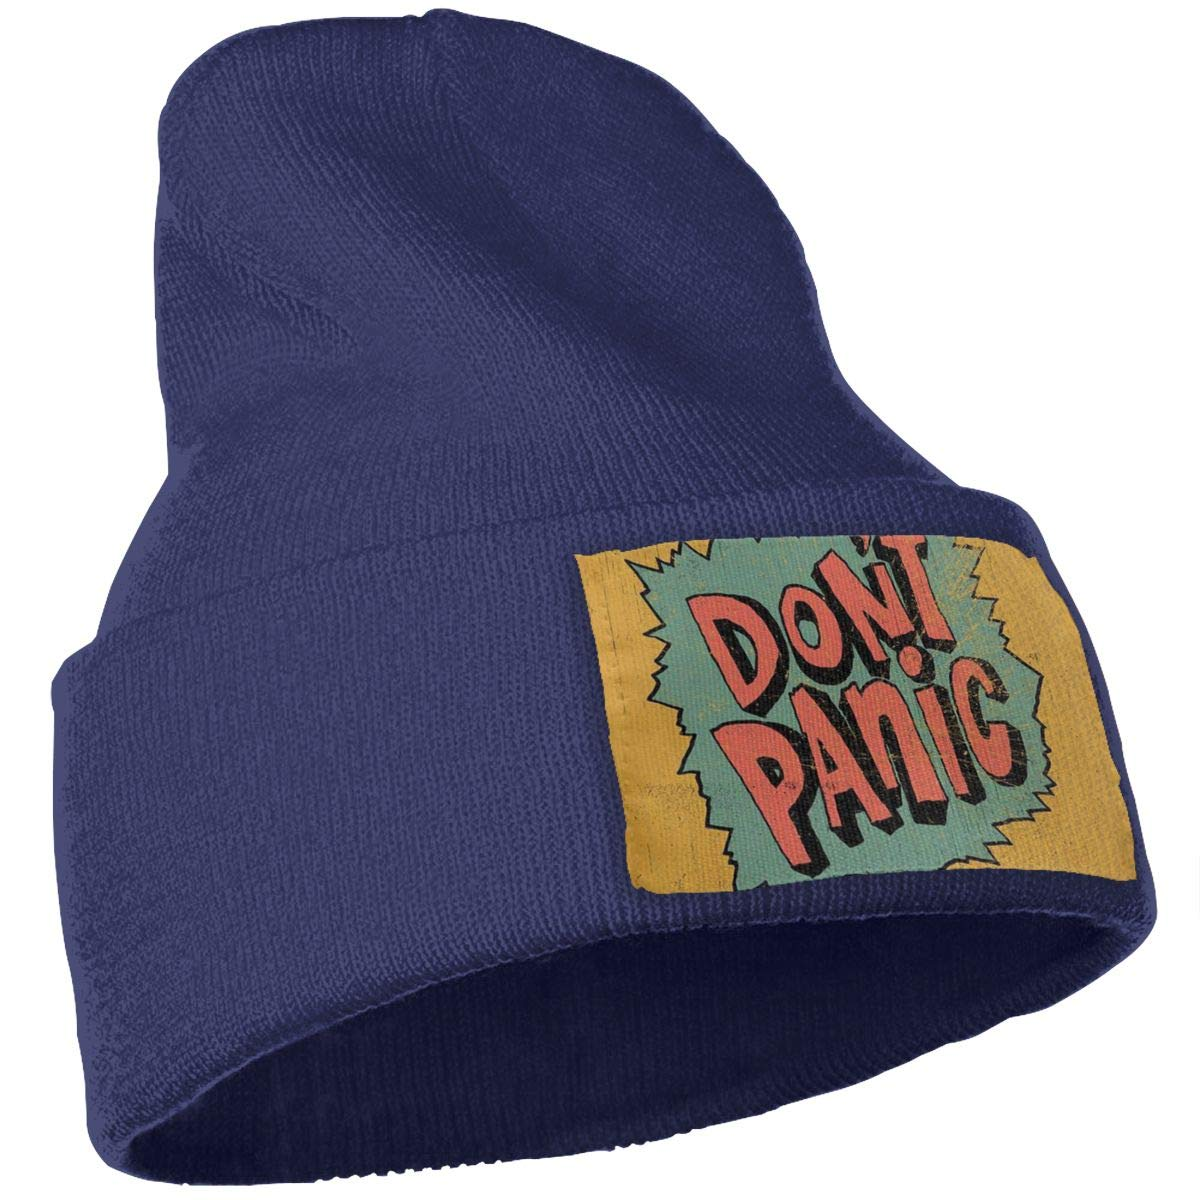 JimHappy Dont Panic Hat for Men and Women Winter Warm Hats Knit Slouchy Thick Skull Cap Black